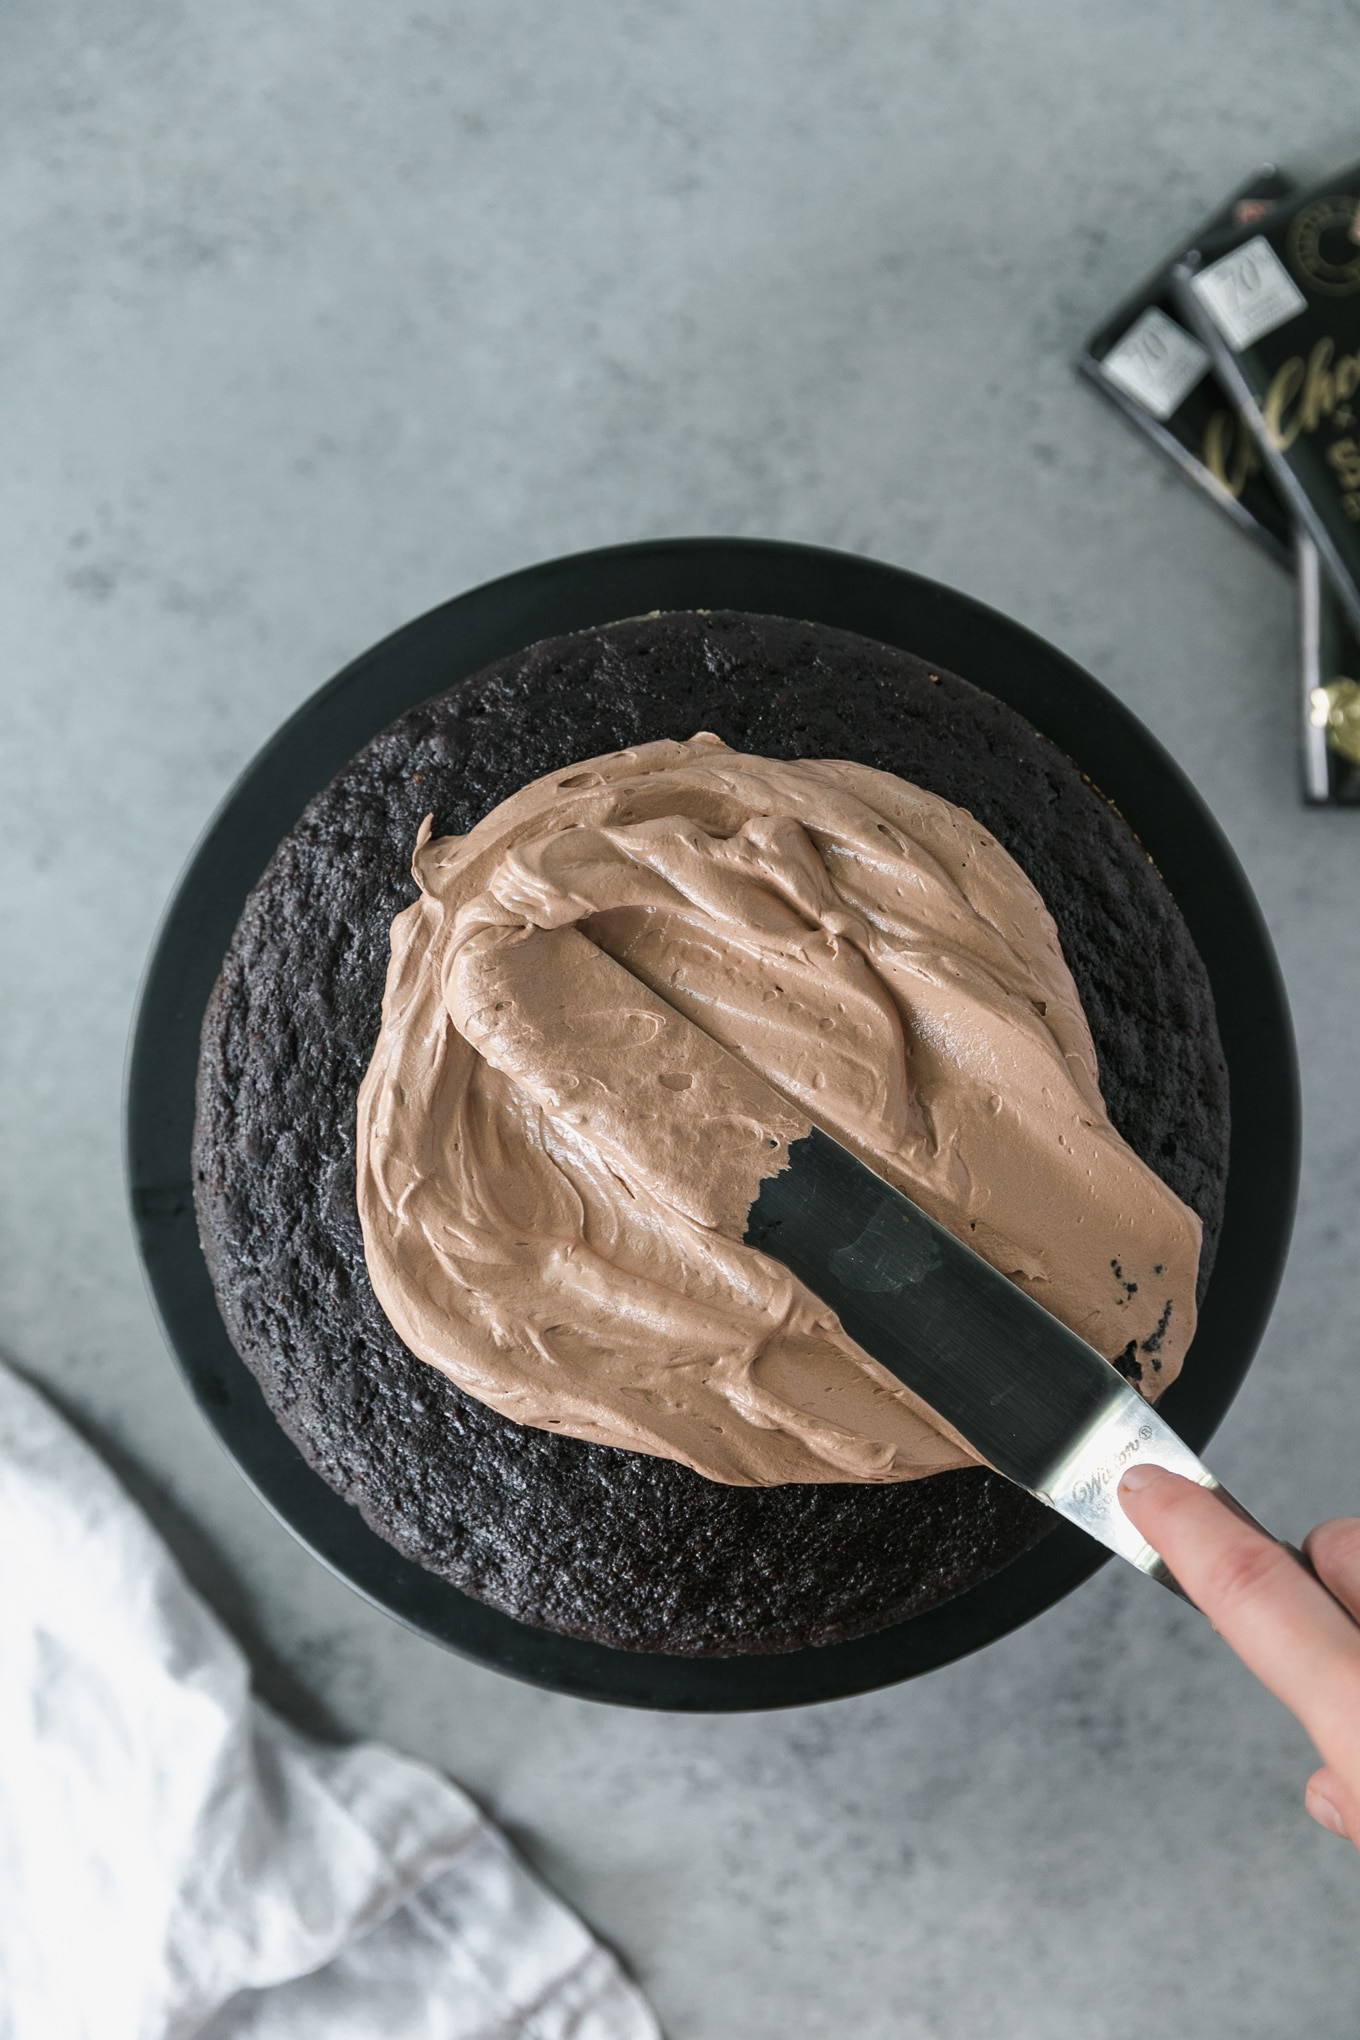 Overhead shot of chocolate buttercream being spread on a dark chocolate cake layer